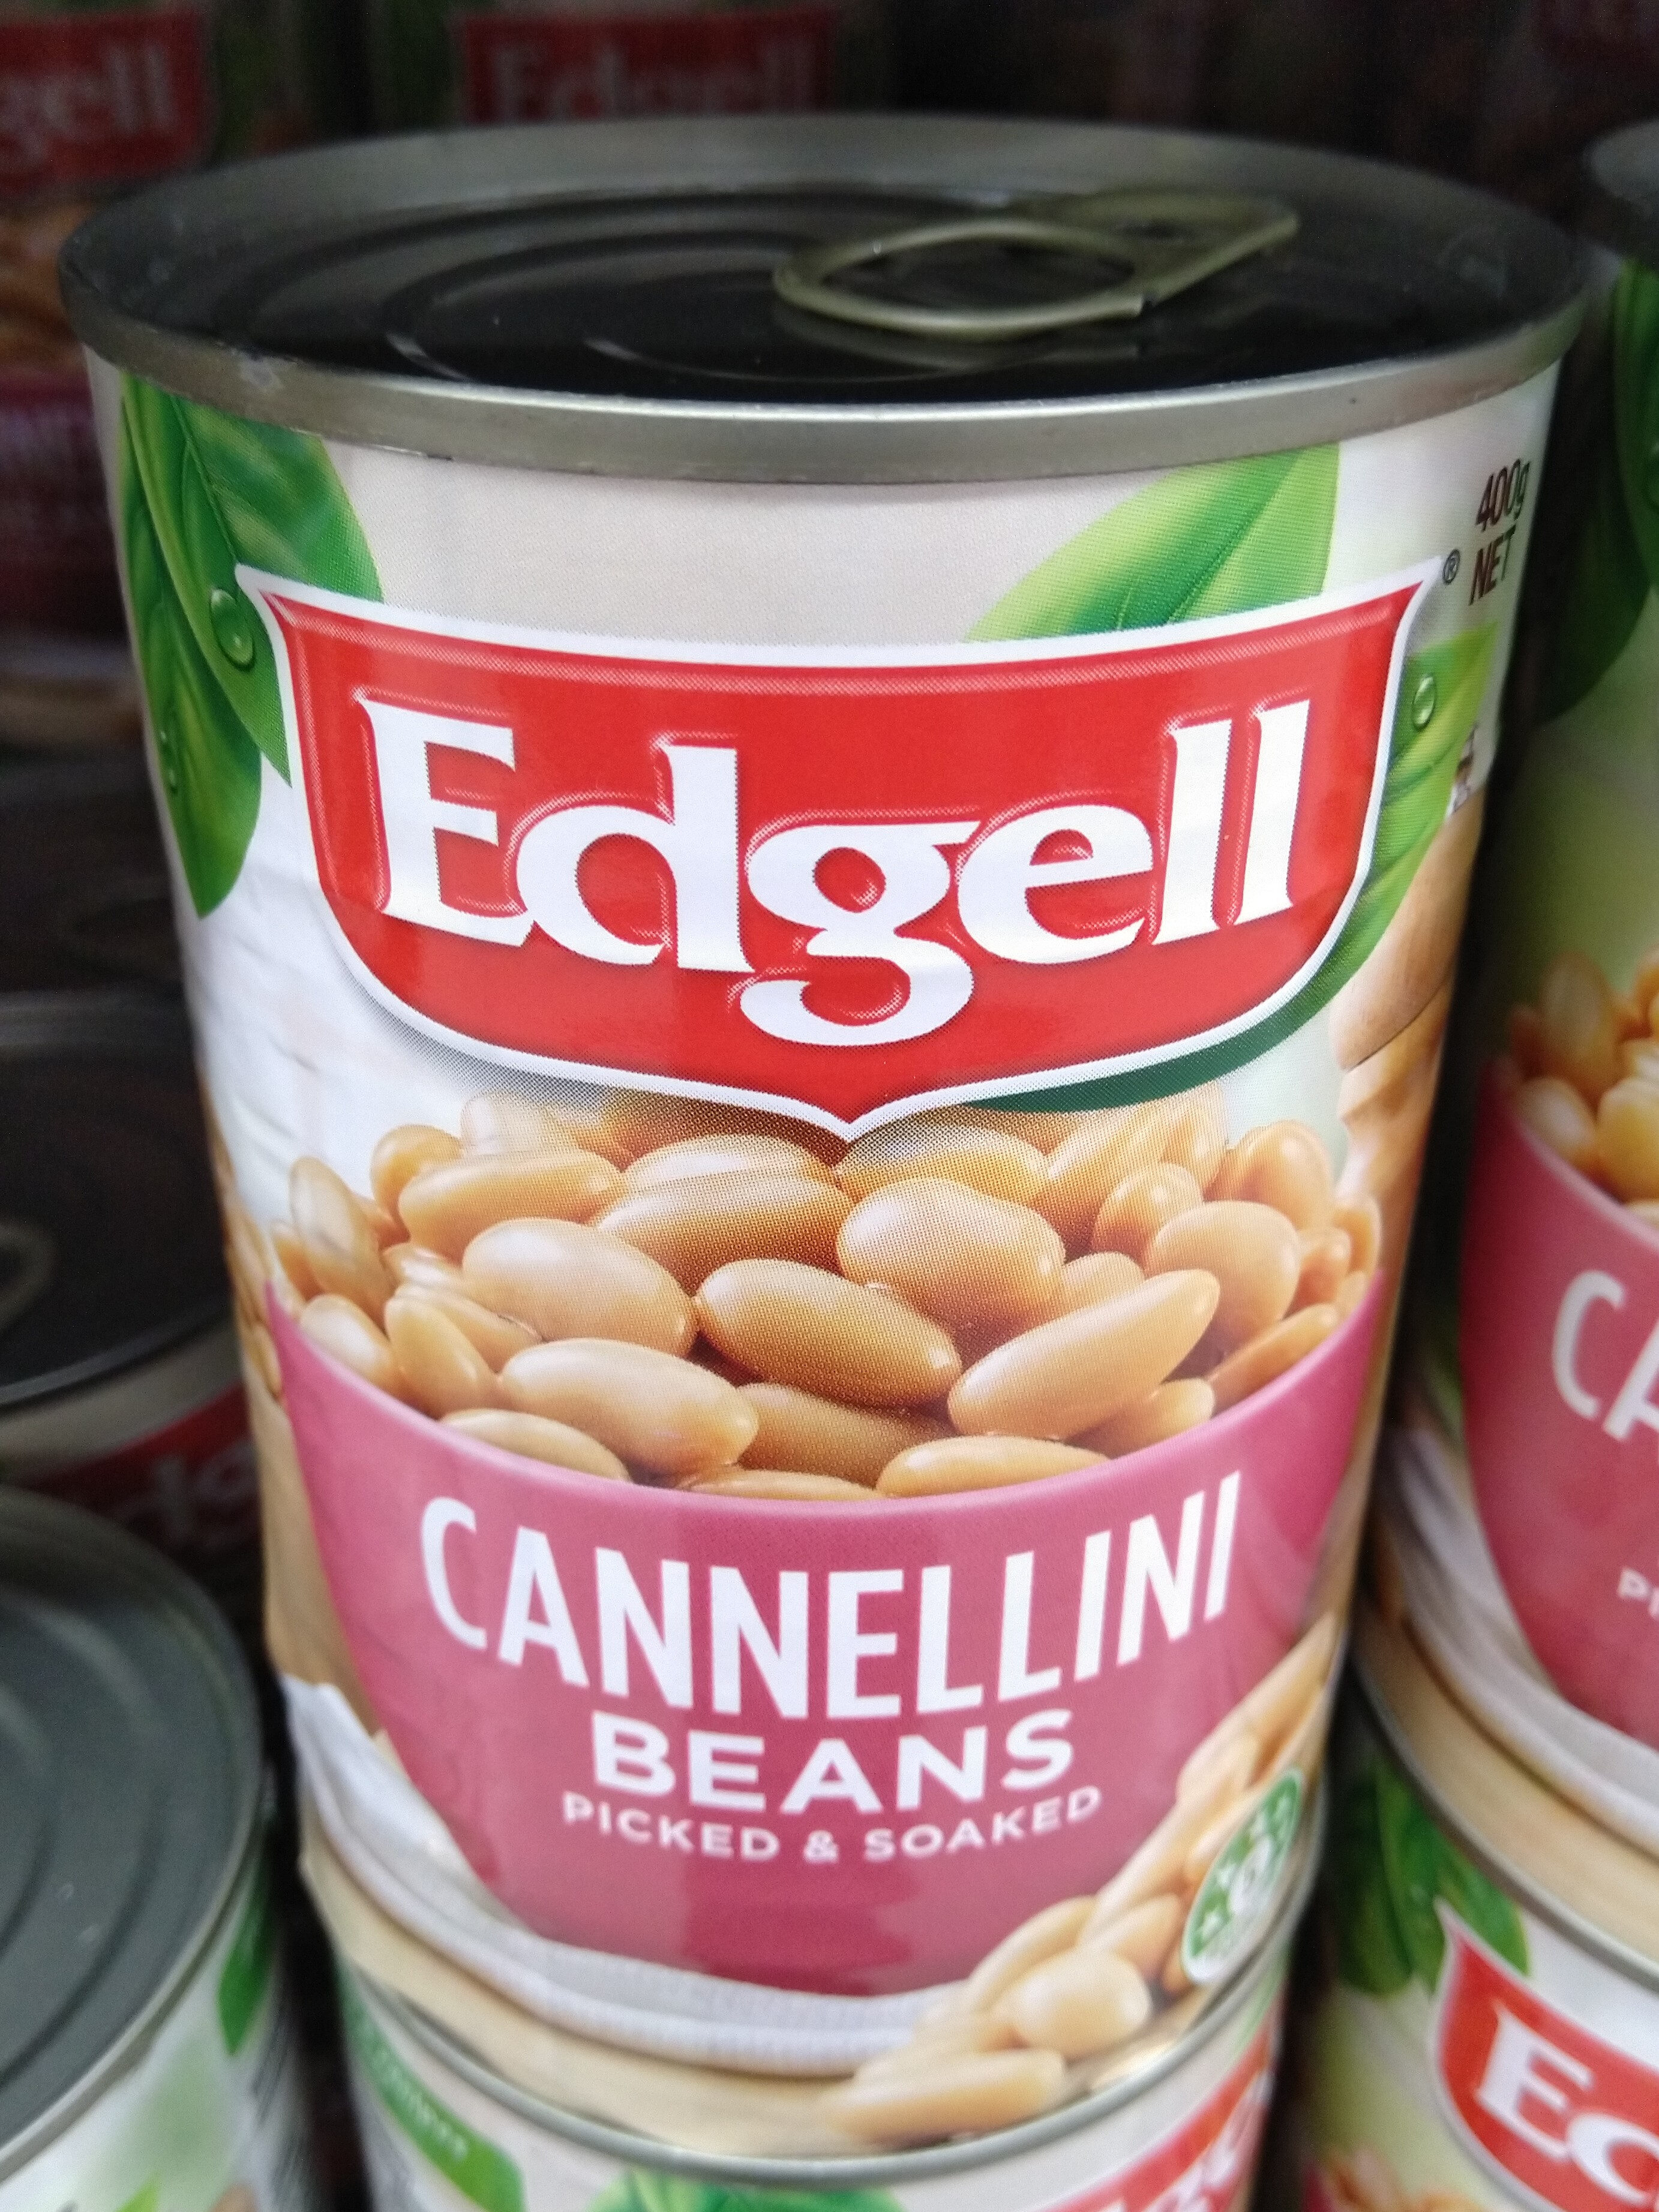 Edgell Cannellini Beans - Product